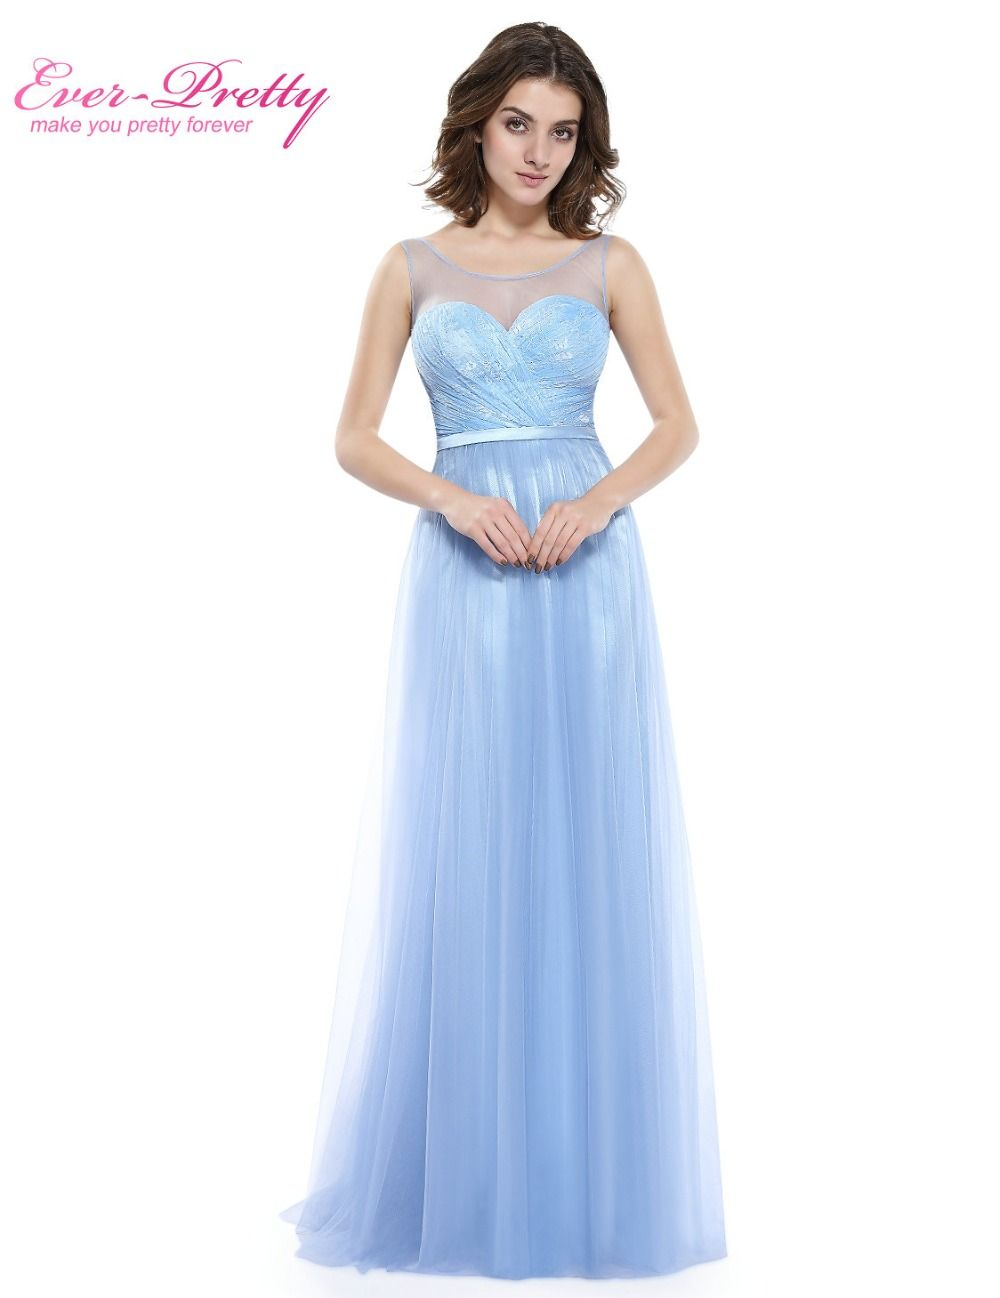 Womens sexy ice blue prom dresses ever pretty he08833ib sexy v womens sexy ice blue prom dresses ever pretty he08833ib sexy v neck back design wedding ombrellifo Image collections